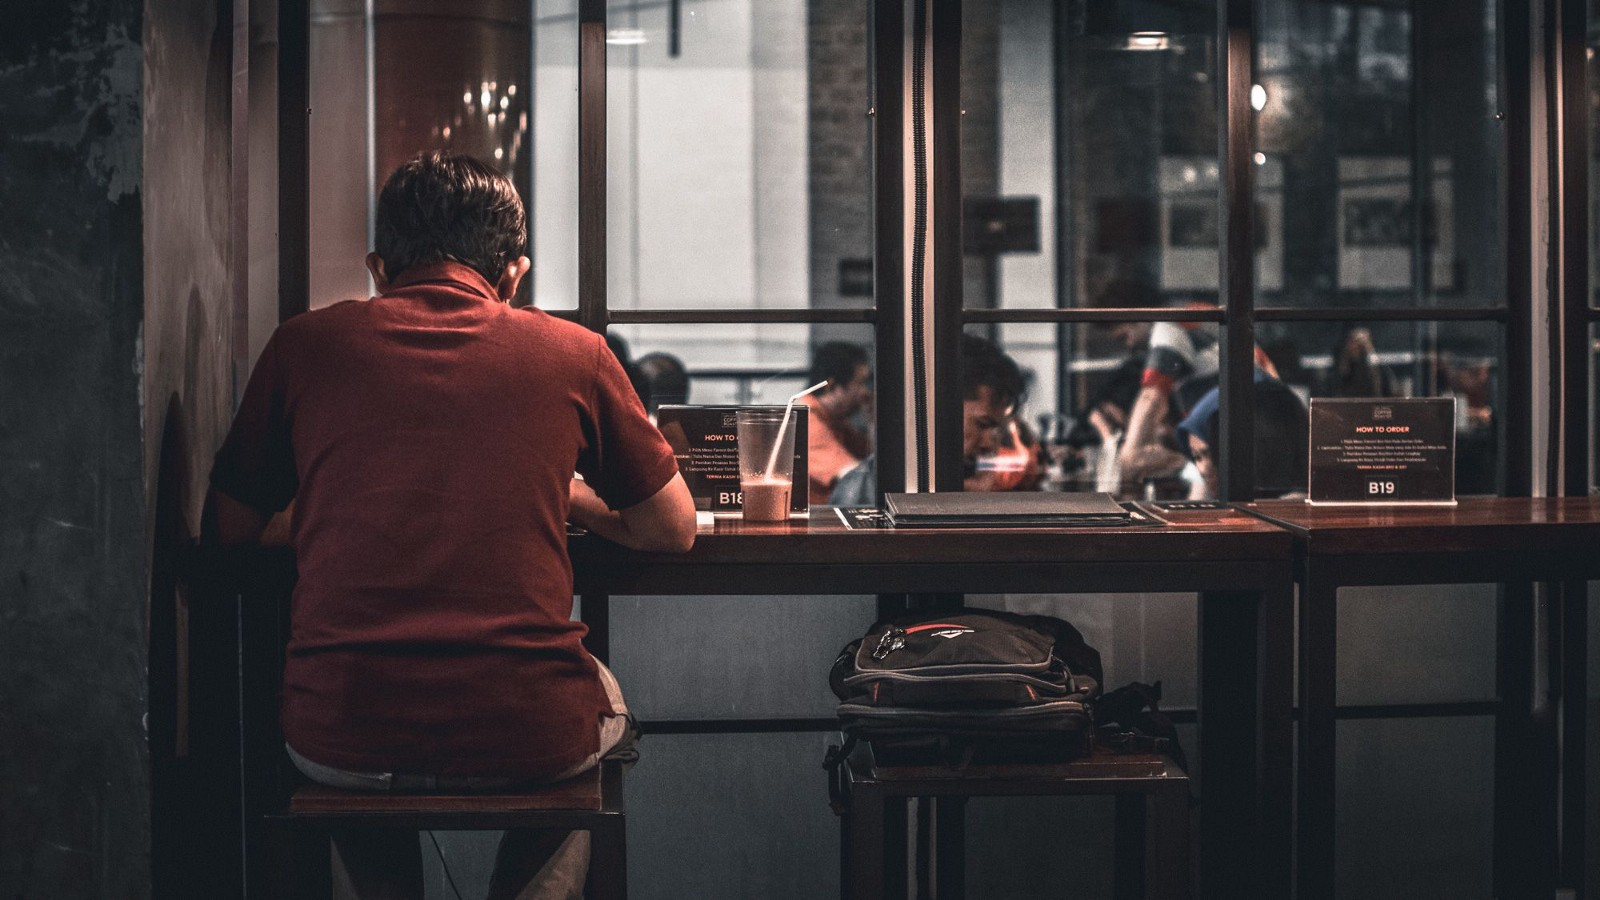 How to be alone: the difference between loneliness and solitude